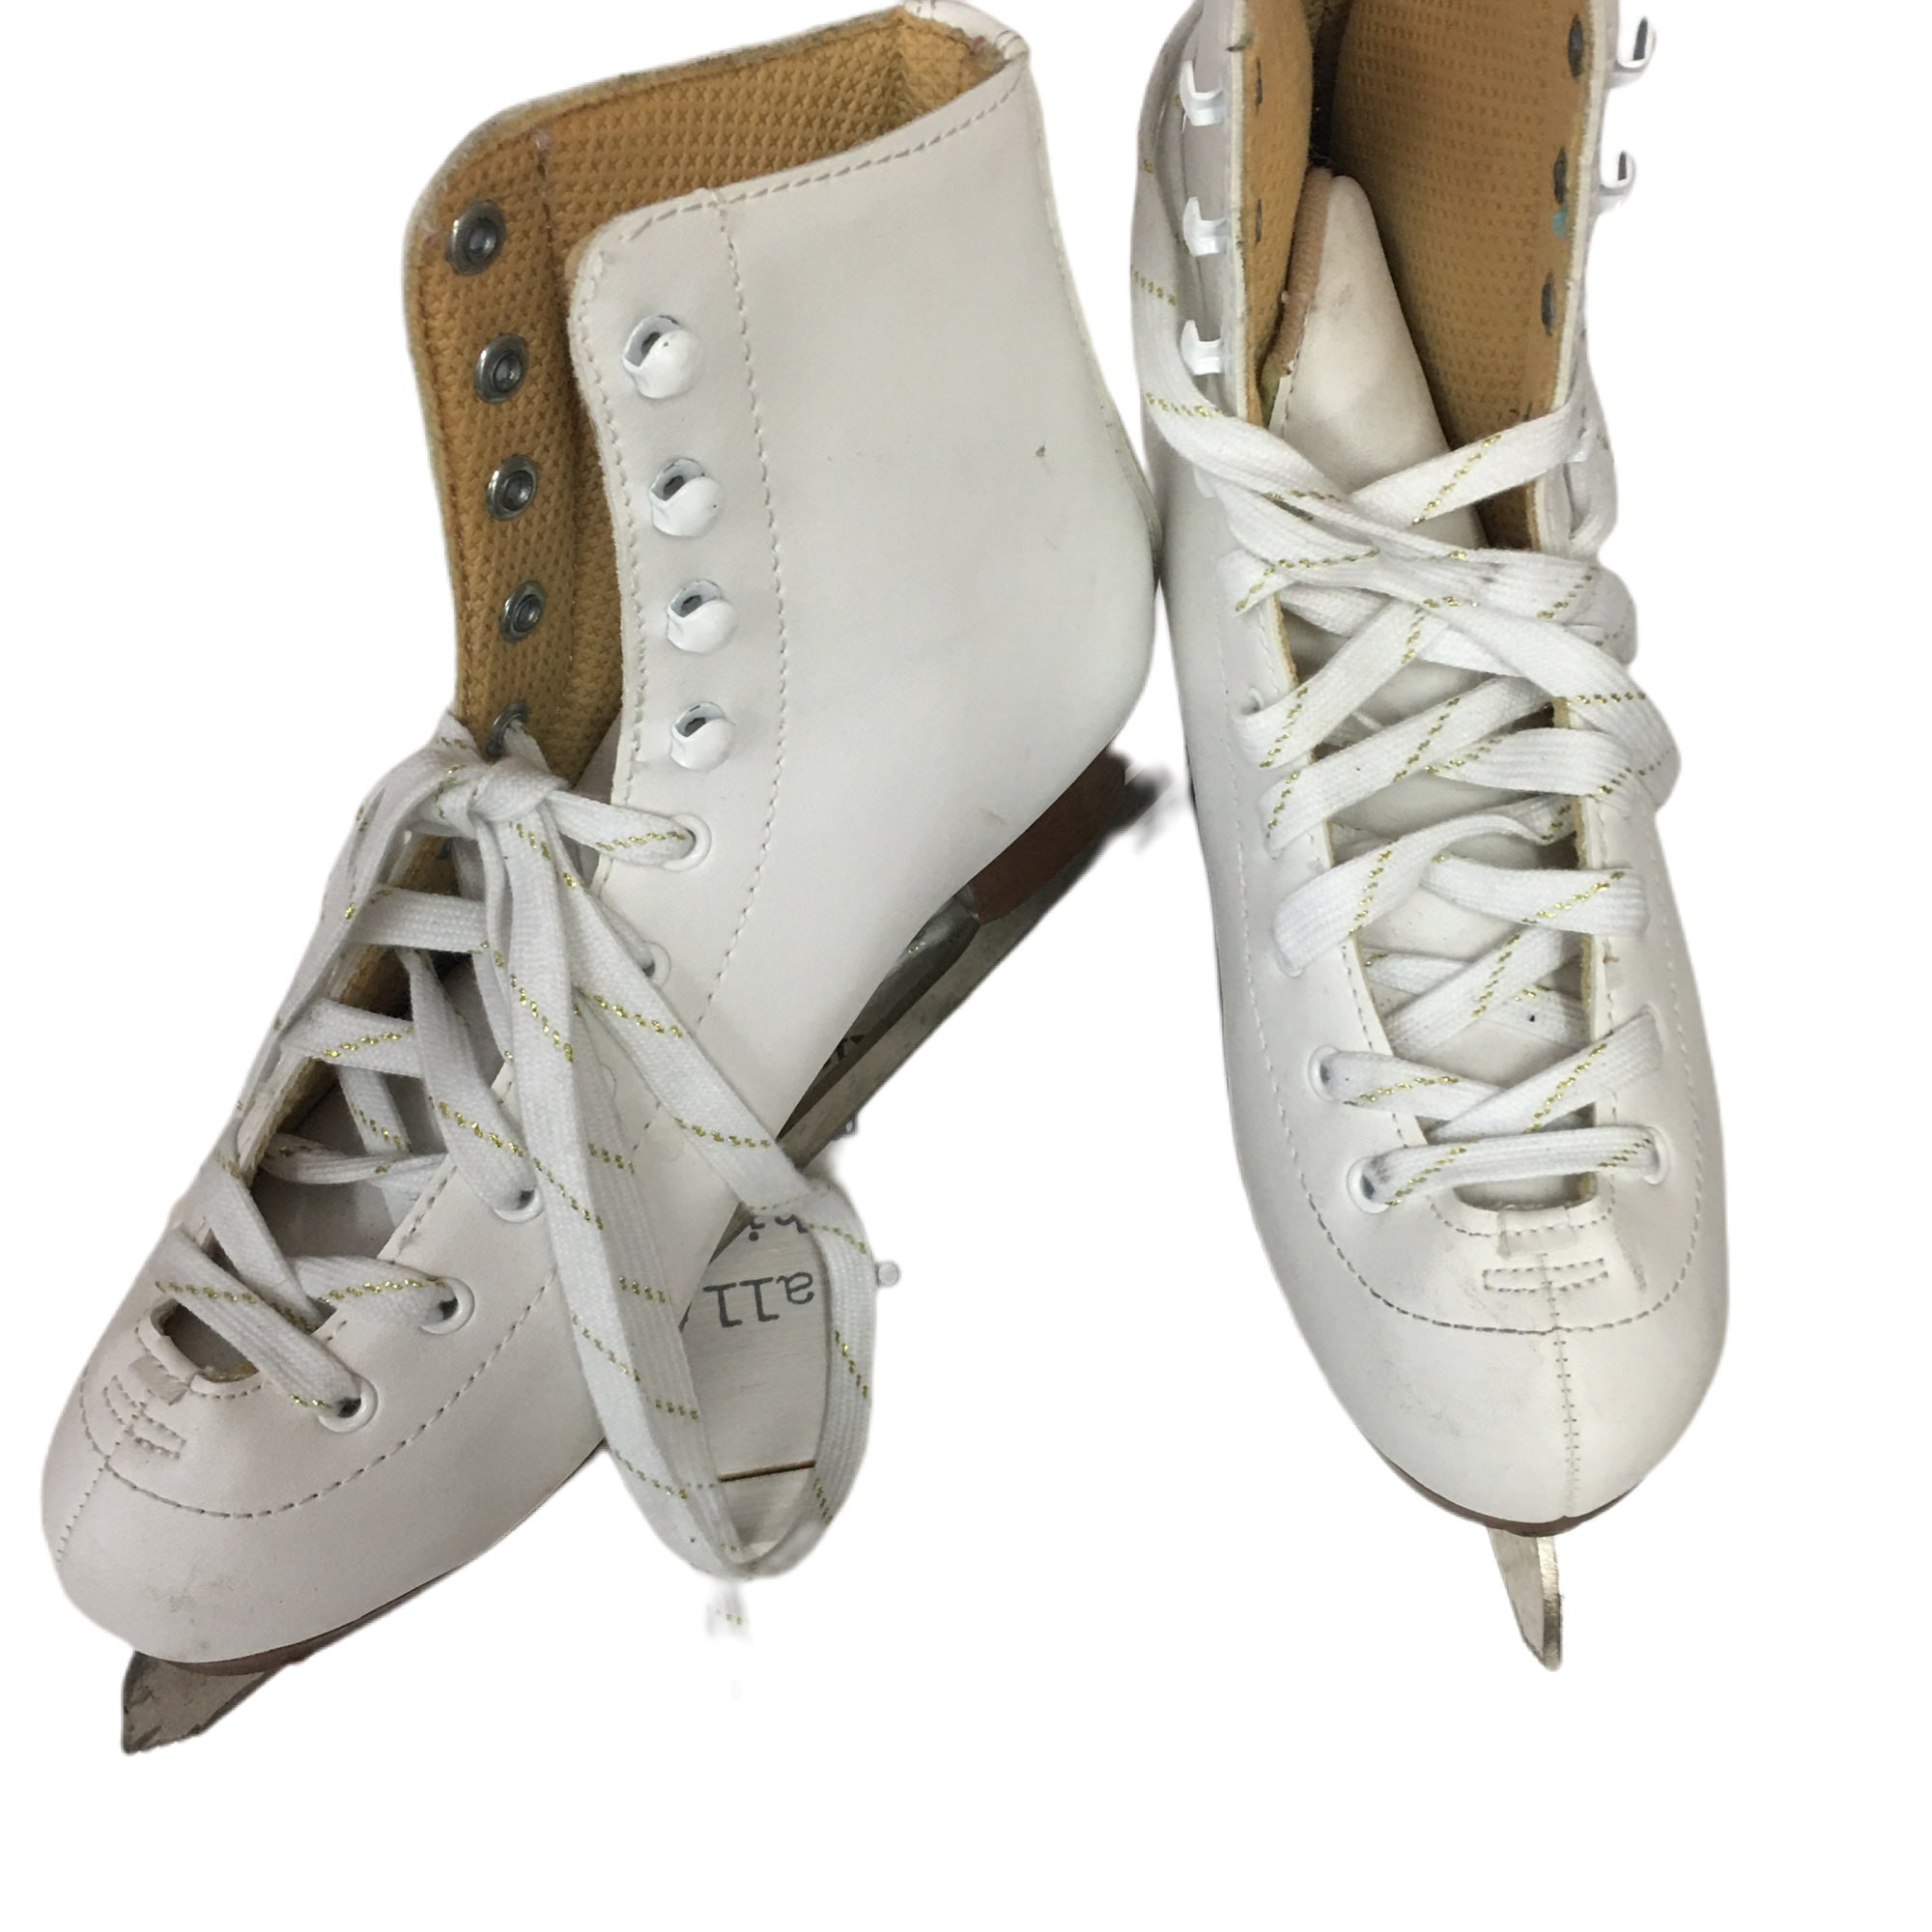 Shoes Ice Skates Size 5